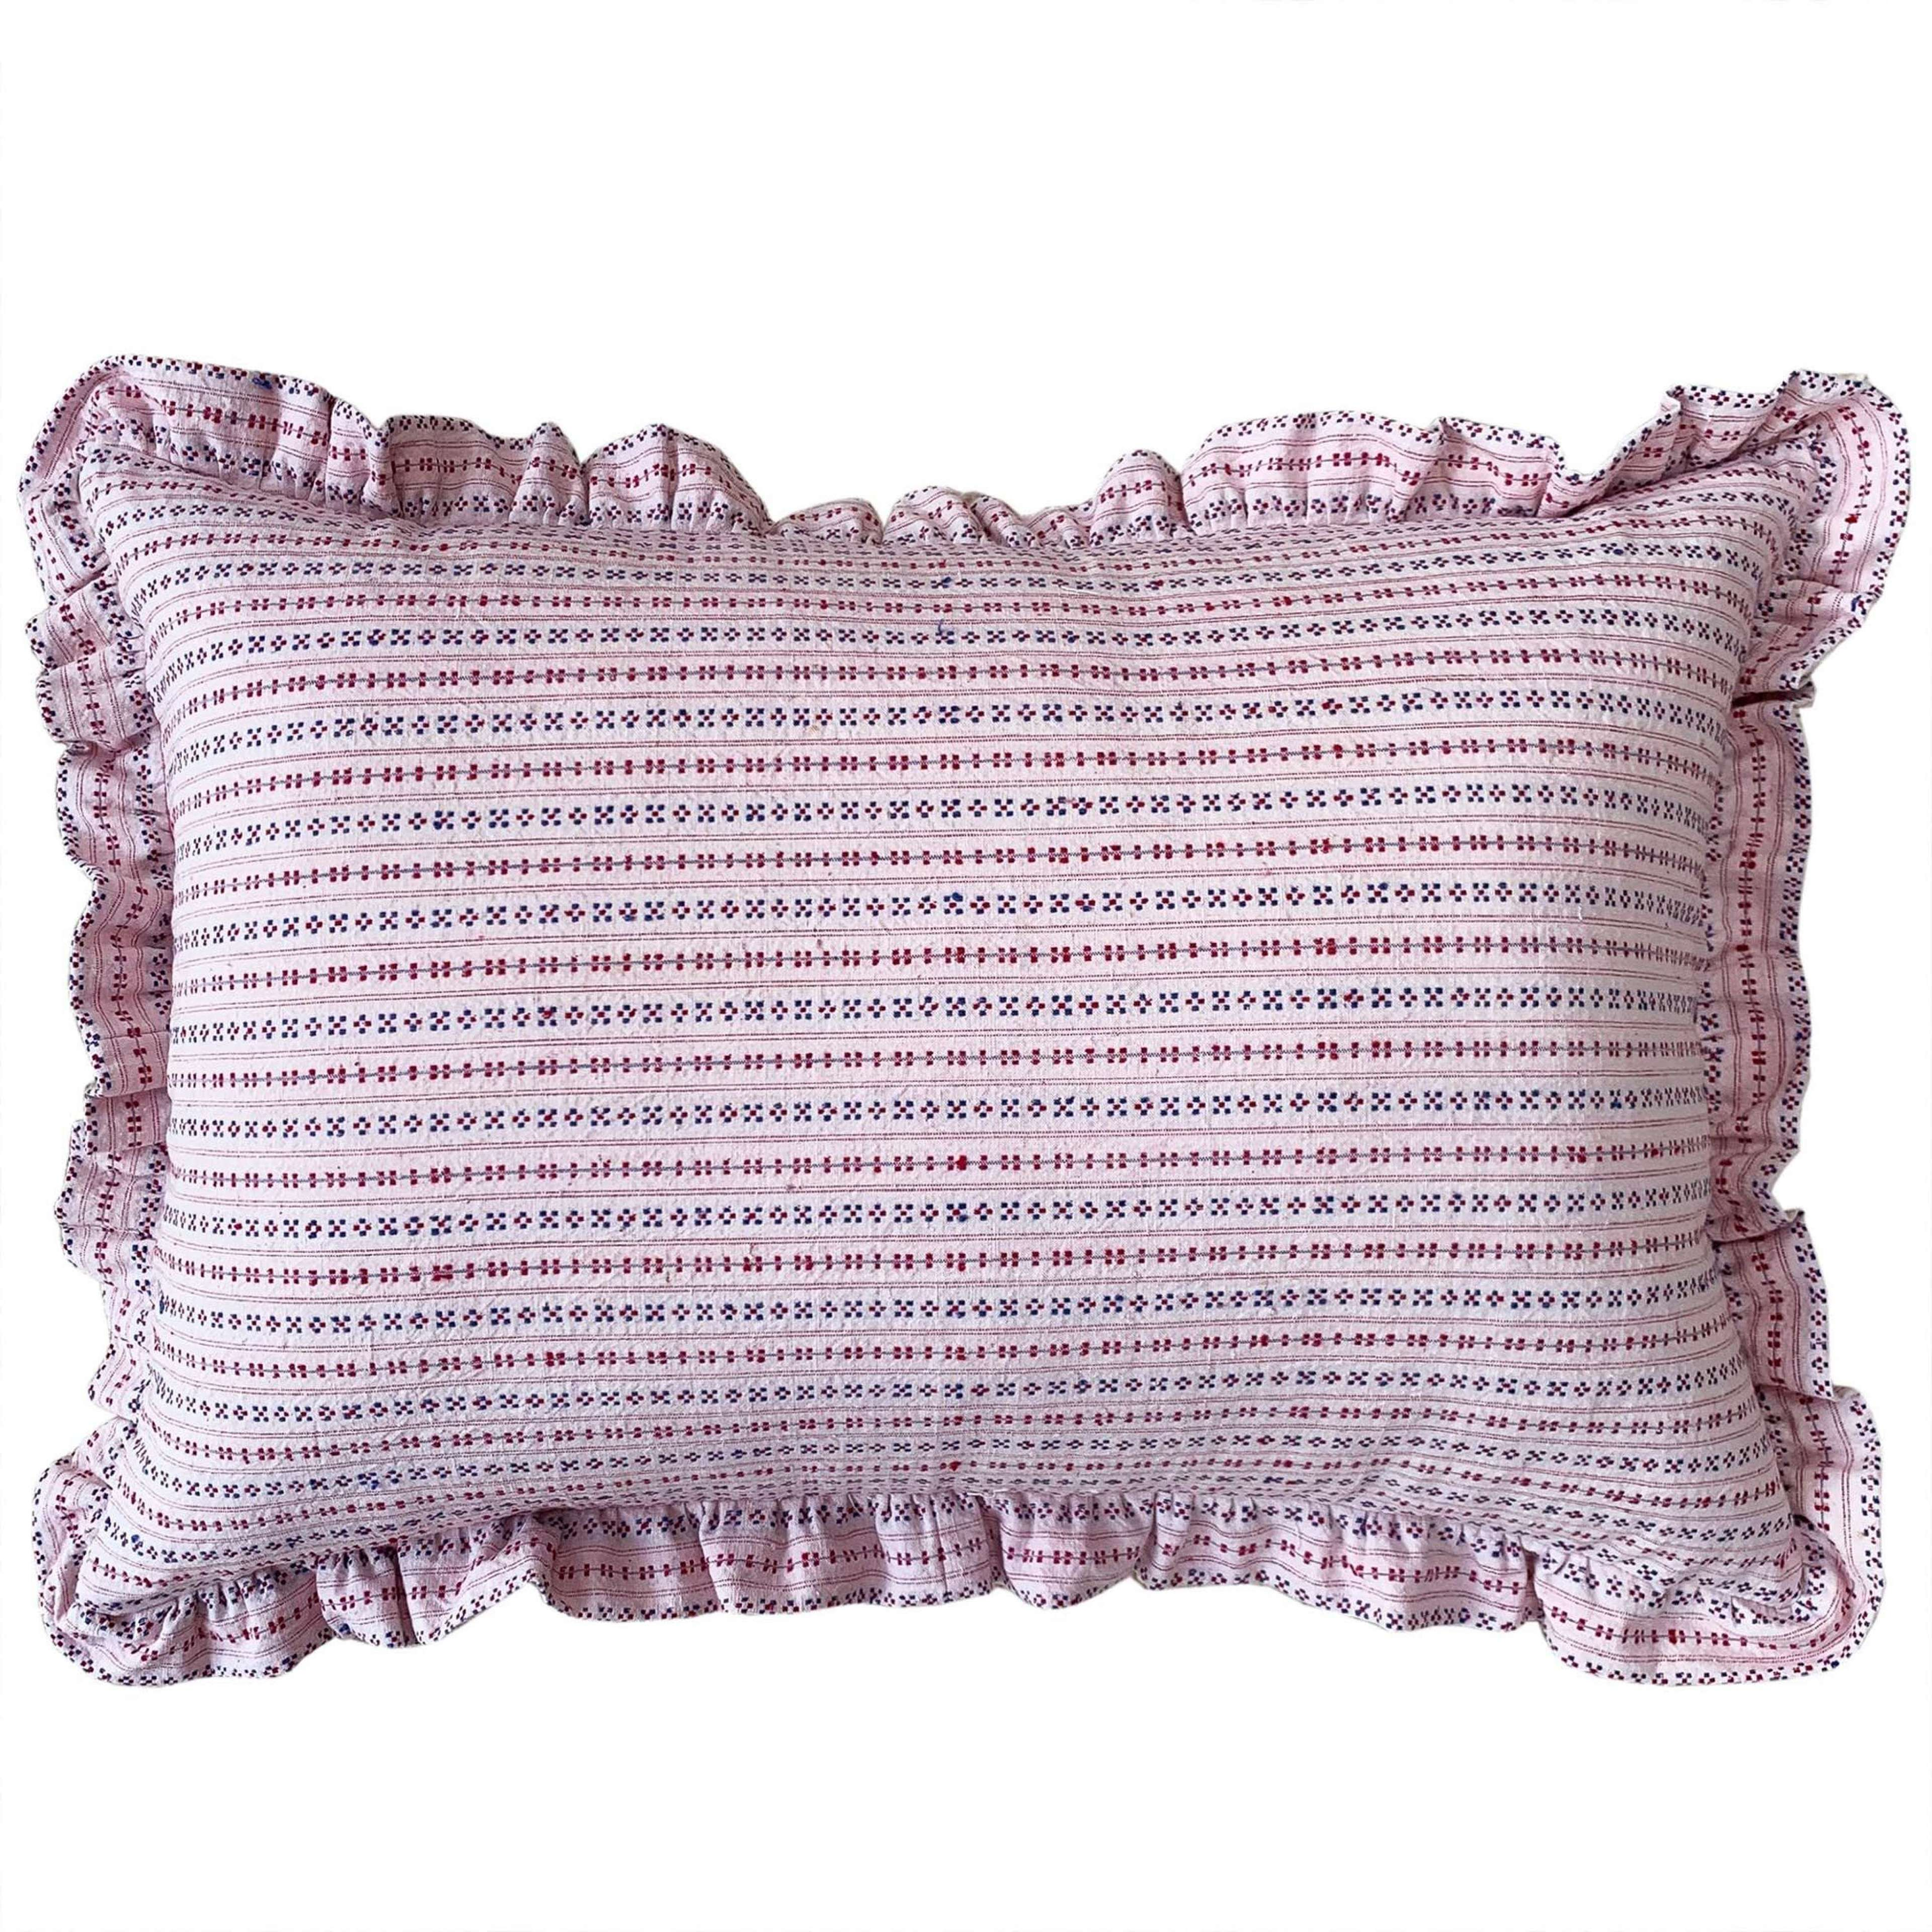 Songjiang cushions - ditsy with frill trim